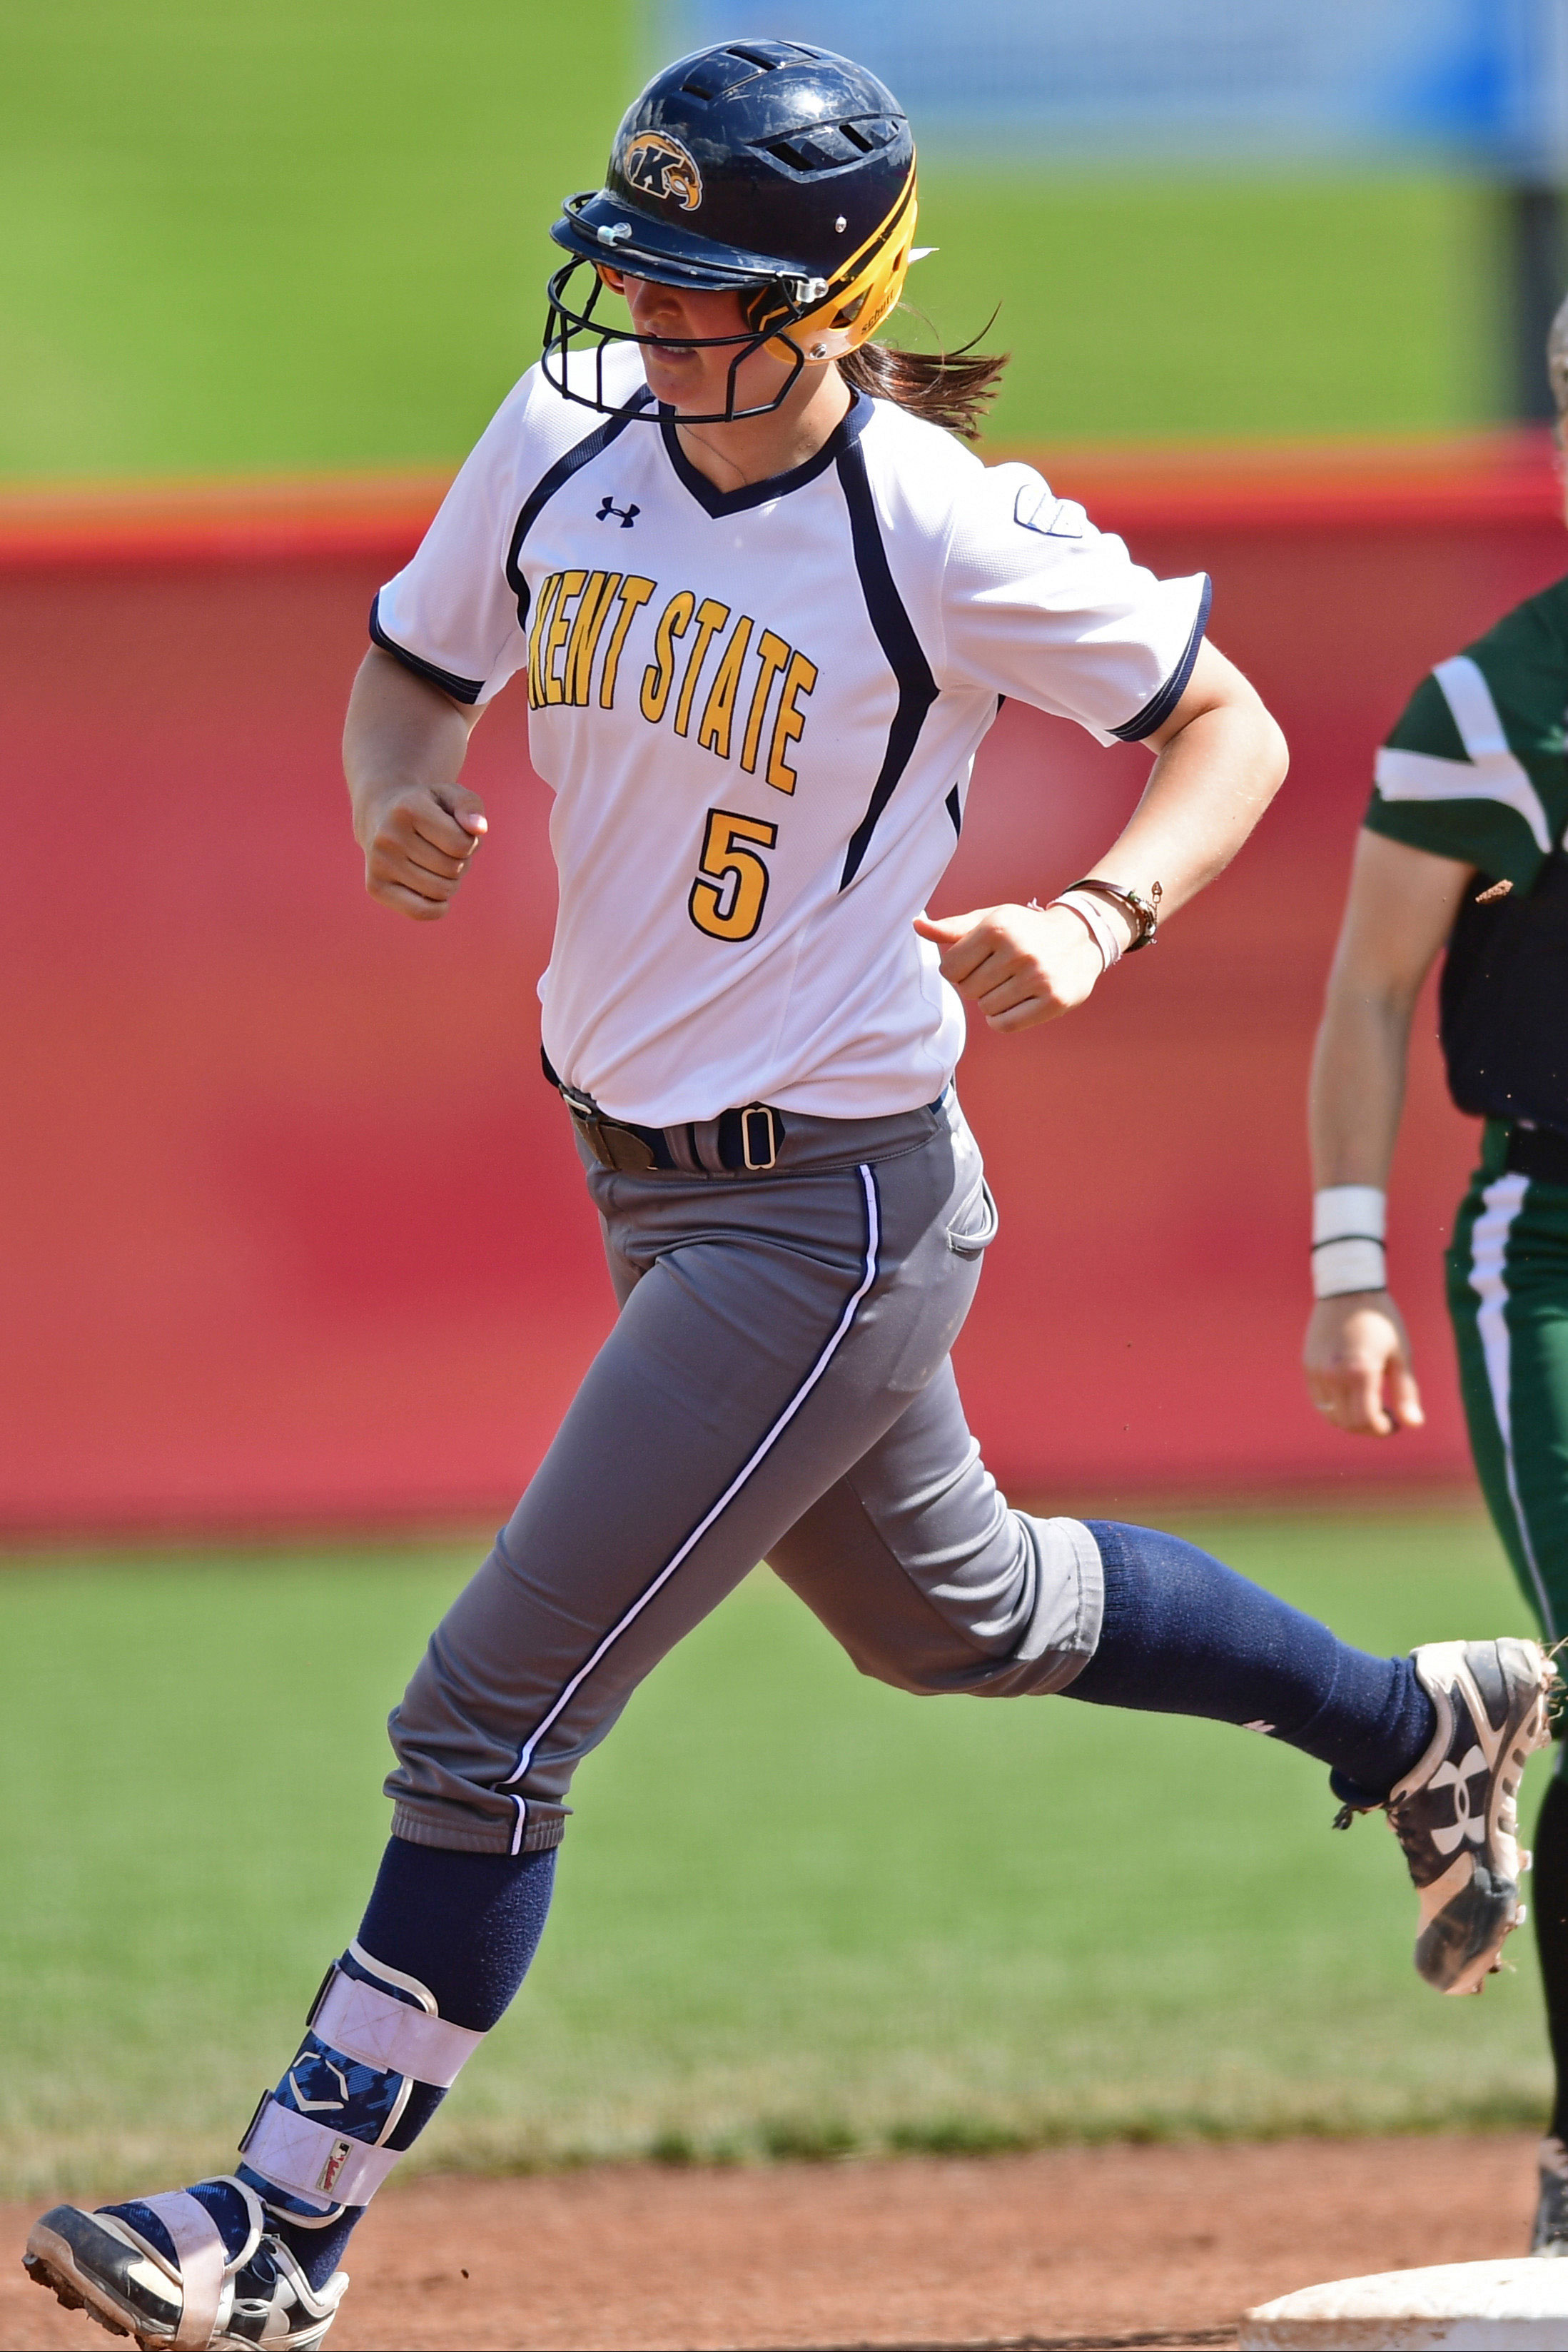 MAC Tournament MVP Ronnie Ladines runs the bases after hitting a two-run home run in the first inning of the final 2017 MAC Softball Tournament game.